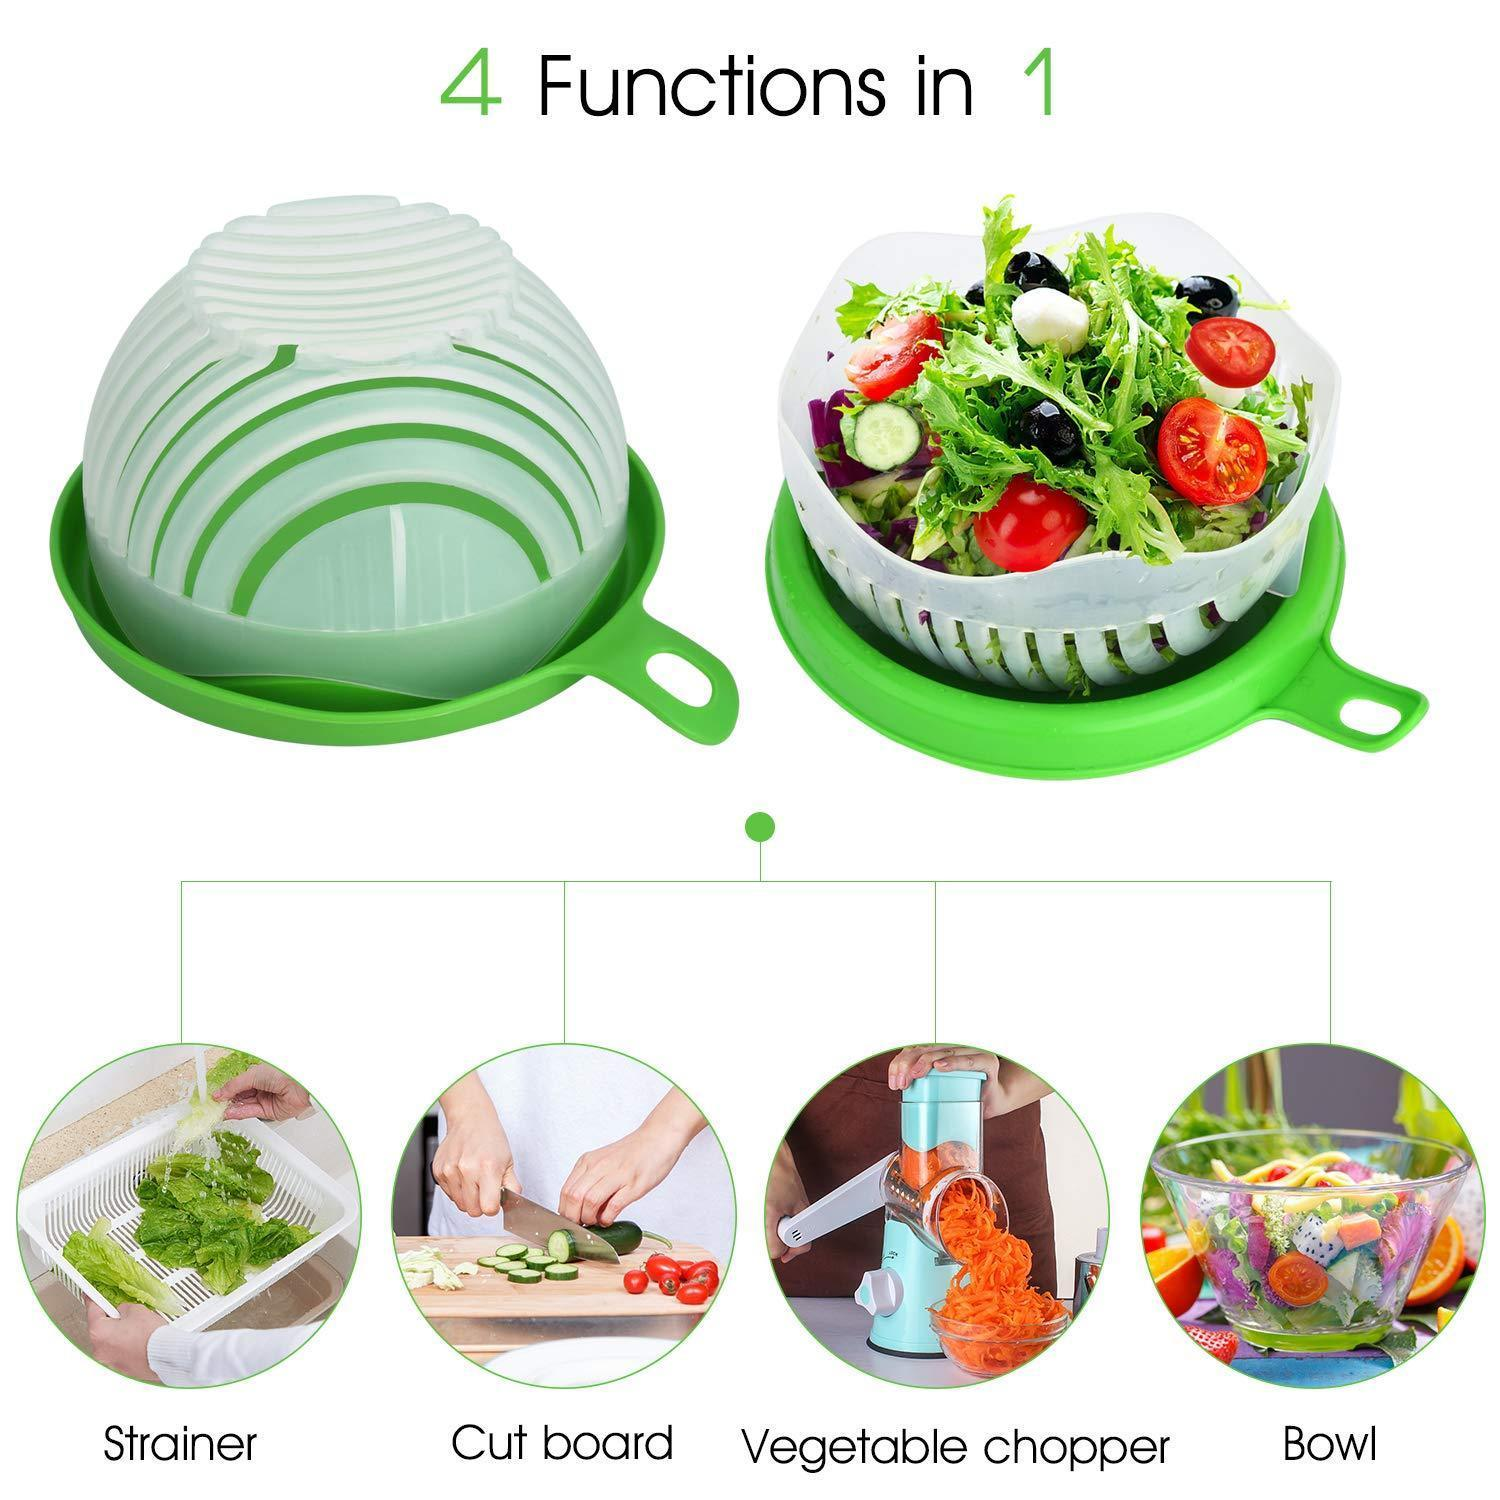 743 Salad Cutter Bowl Upgraded Easy Salad Maker, Fast Fruit Vegetable Salad Chopper Bowl Fresh Salad Slicer